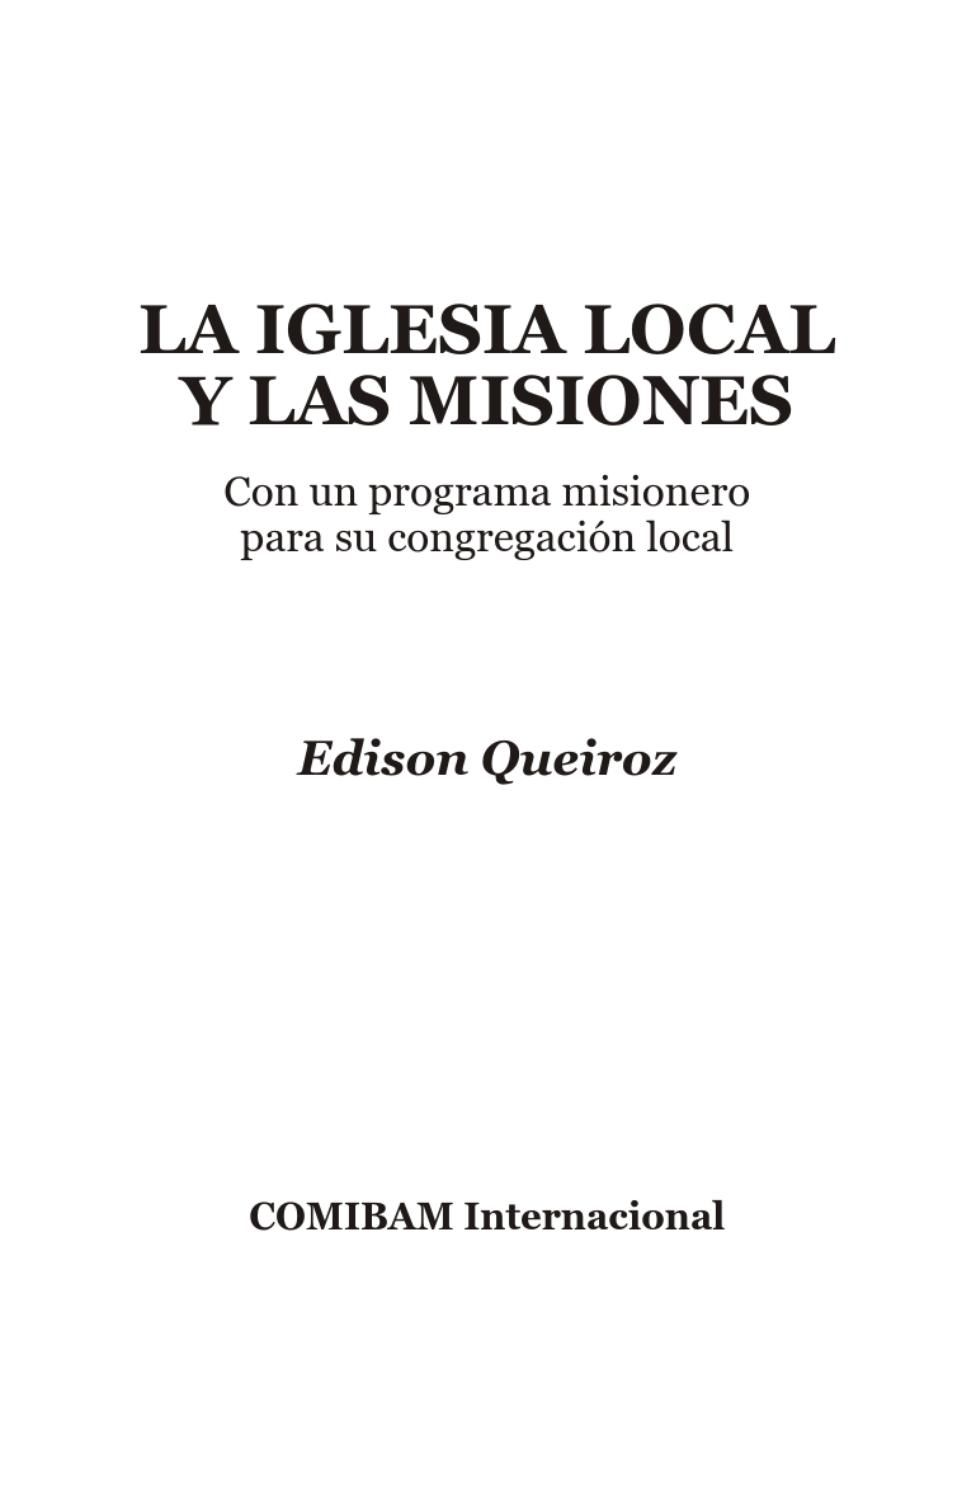 Iglesia Local Y Misiones Digital Publishing Author Newspapers